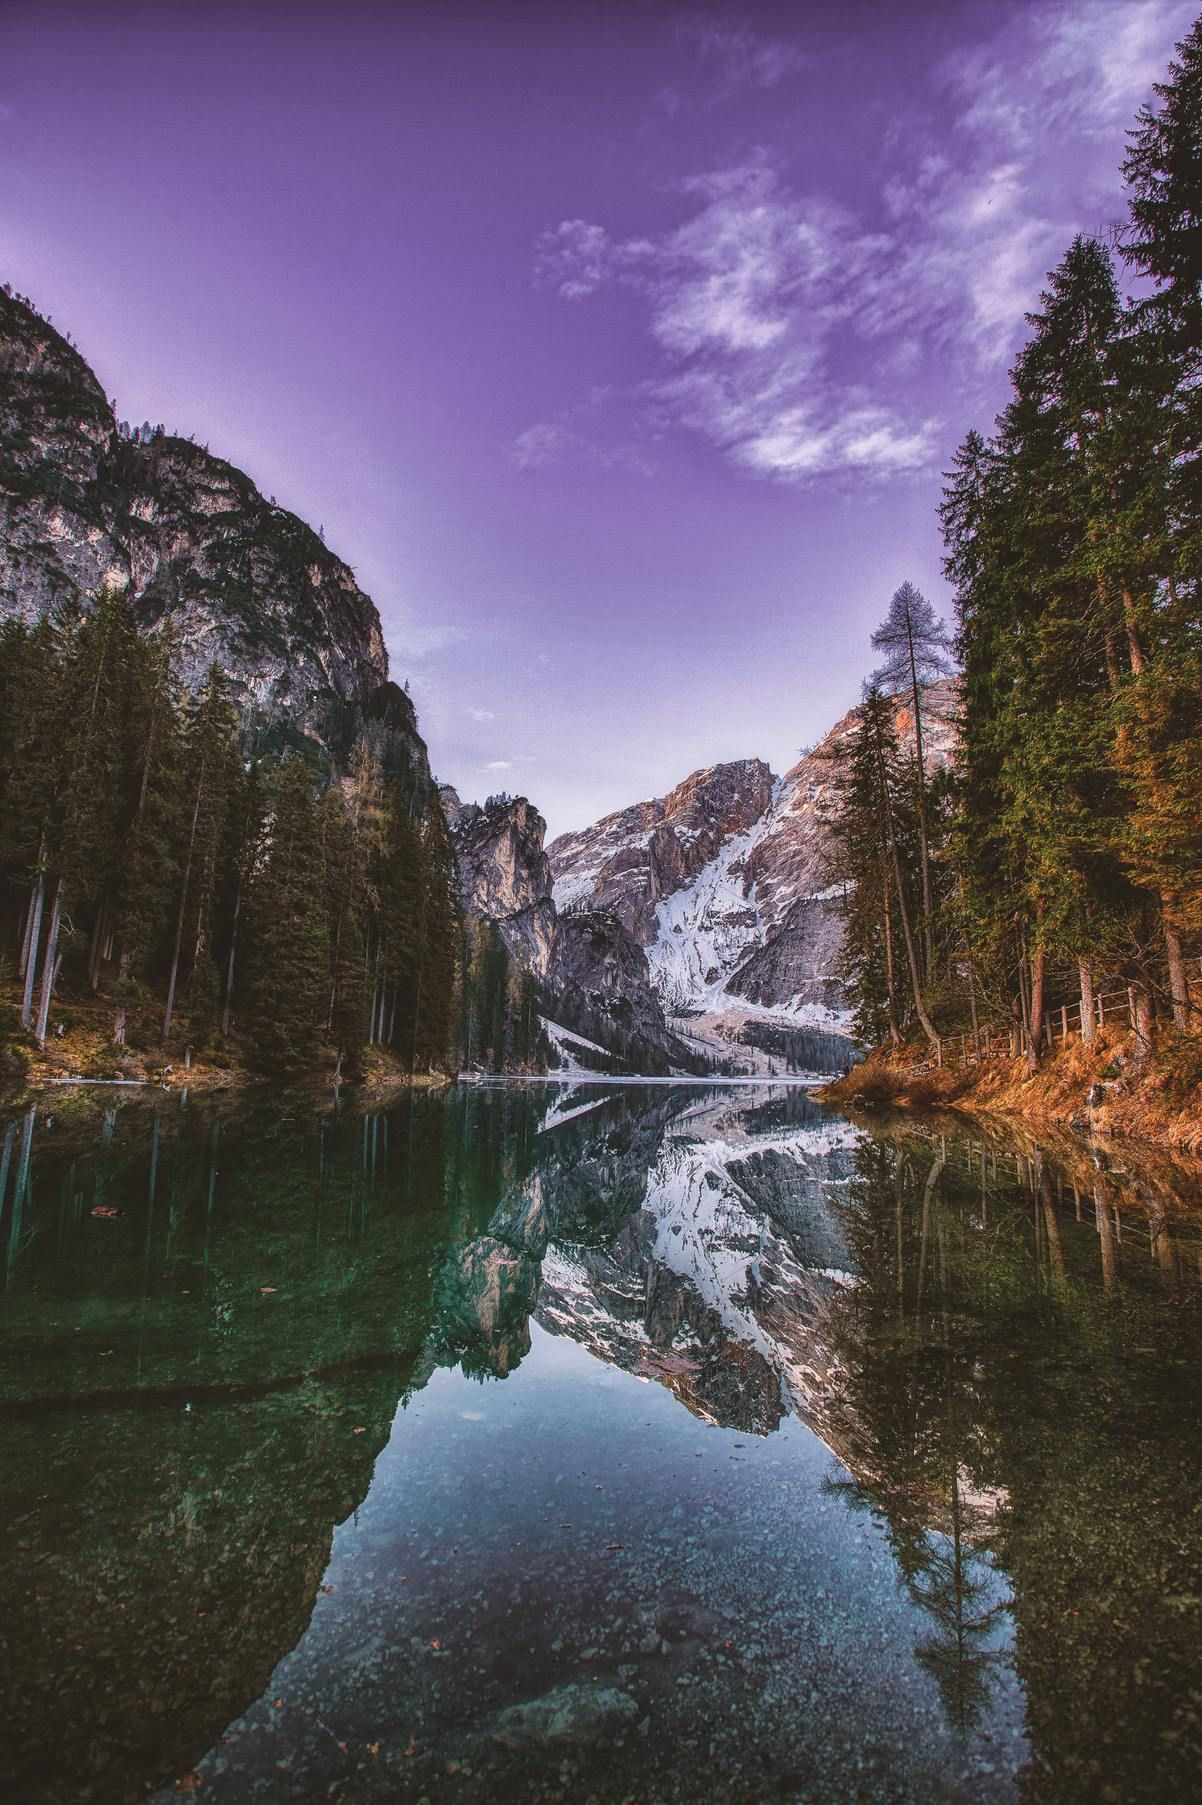 50 Free Beautiful Nature Wallpapers For Iphone That You Ll Love In 2021 Landscape Wallpaper Nature Images Nature Wallpaper